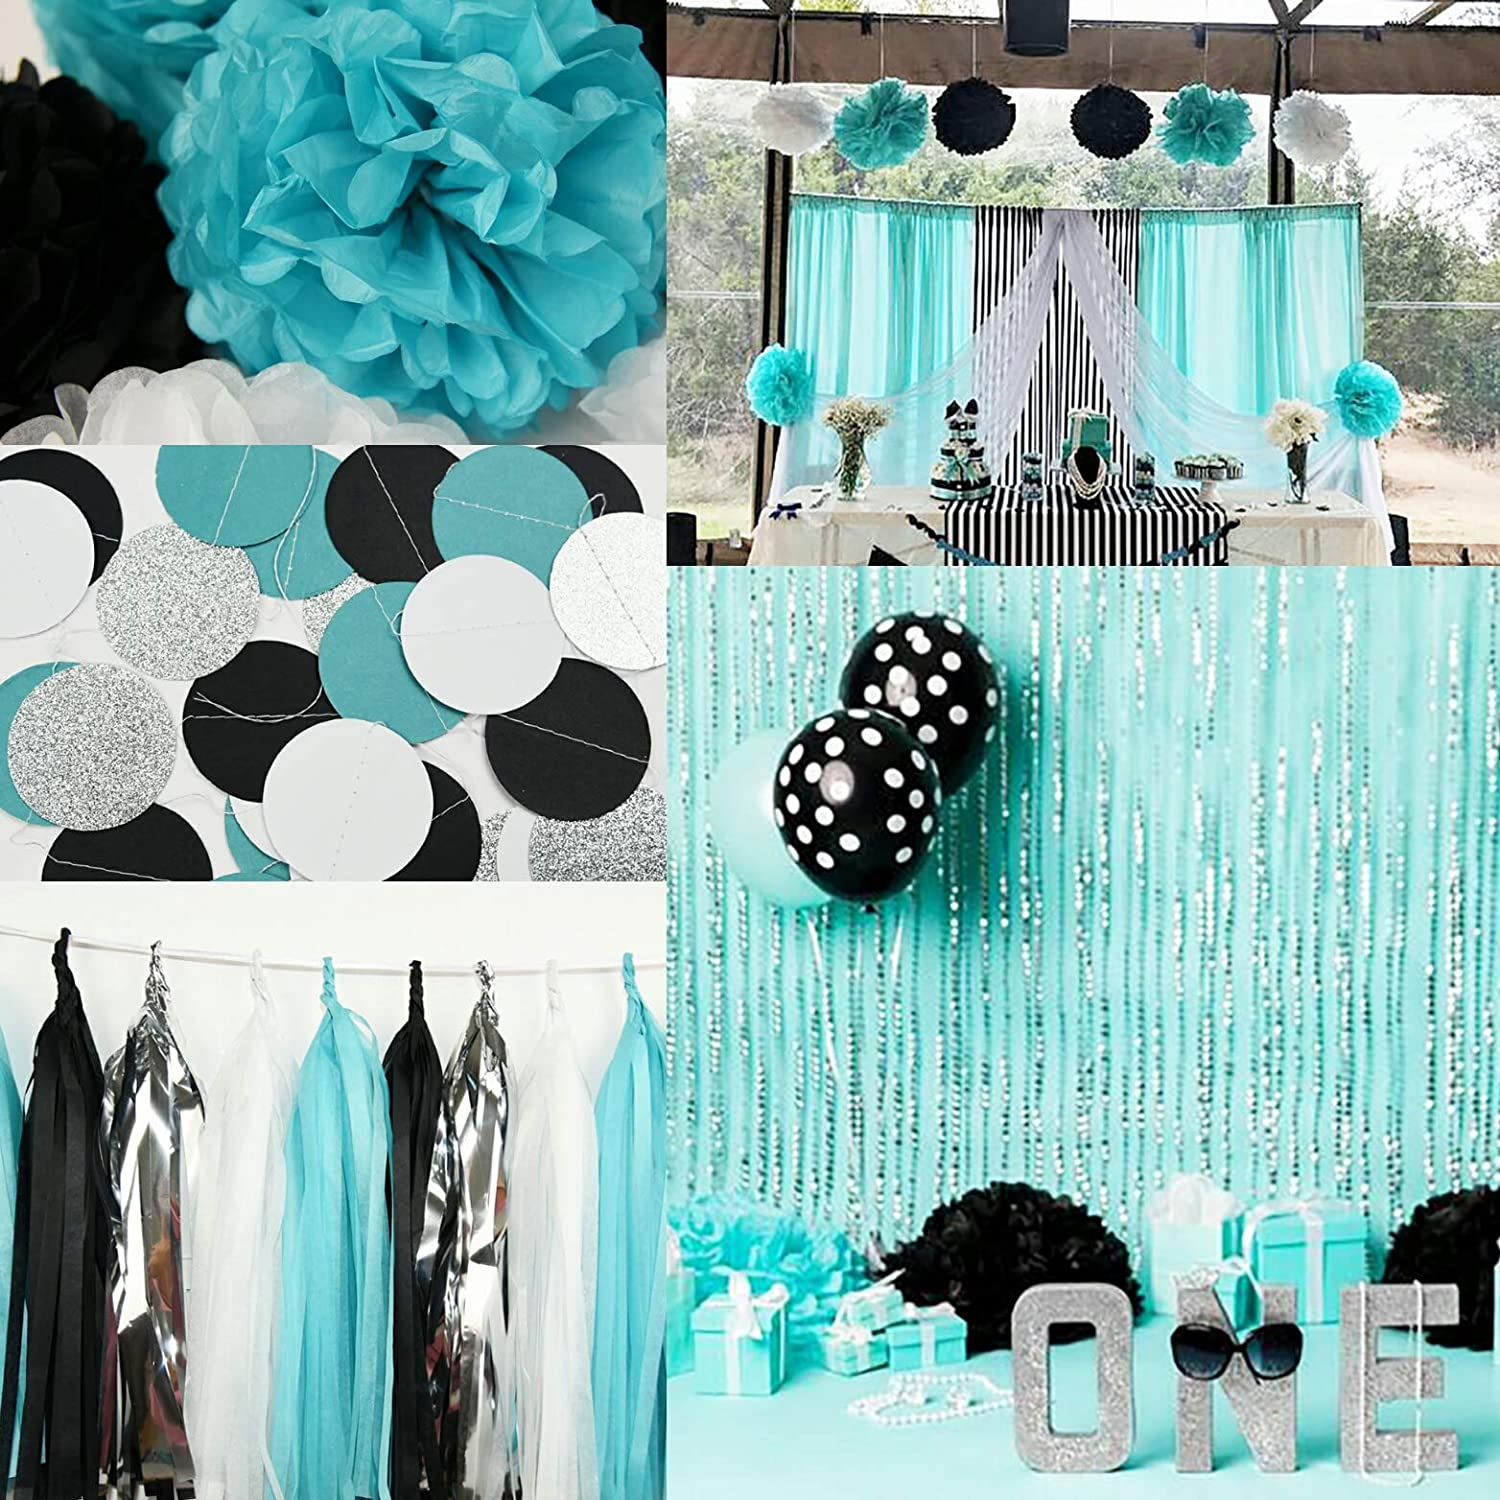 Teal Decorations Baby Shower Decorations Aqua Bridal Shower Robins Egg Blue and Silver Decorations Silver 100 Aqua Teal /& Silver Confetti